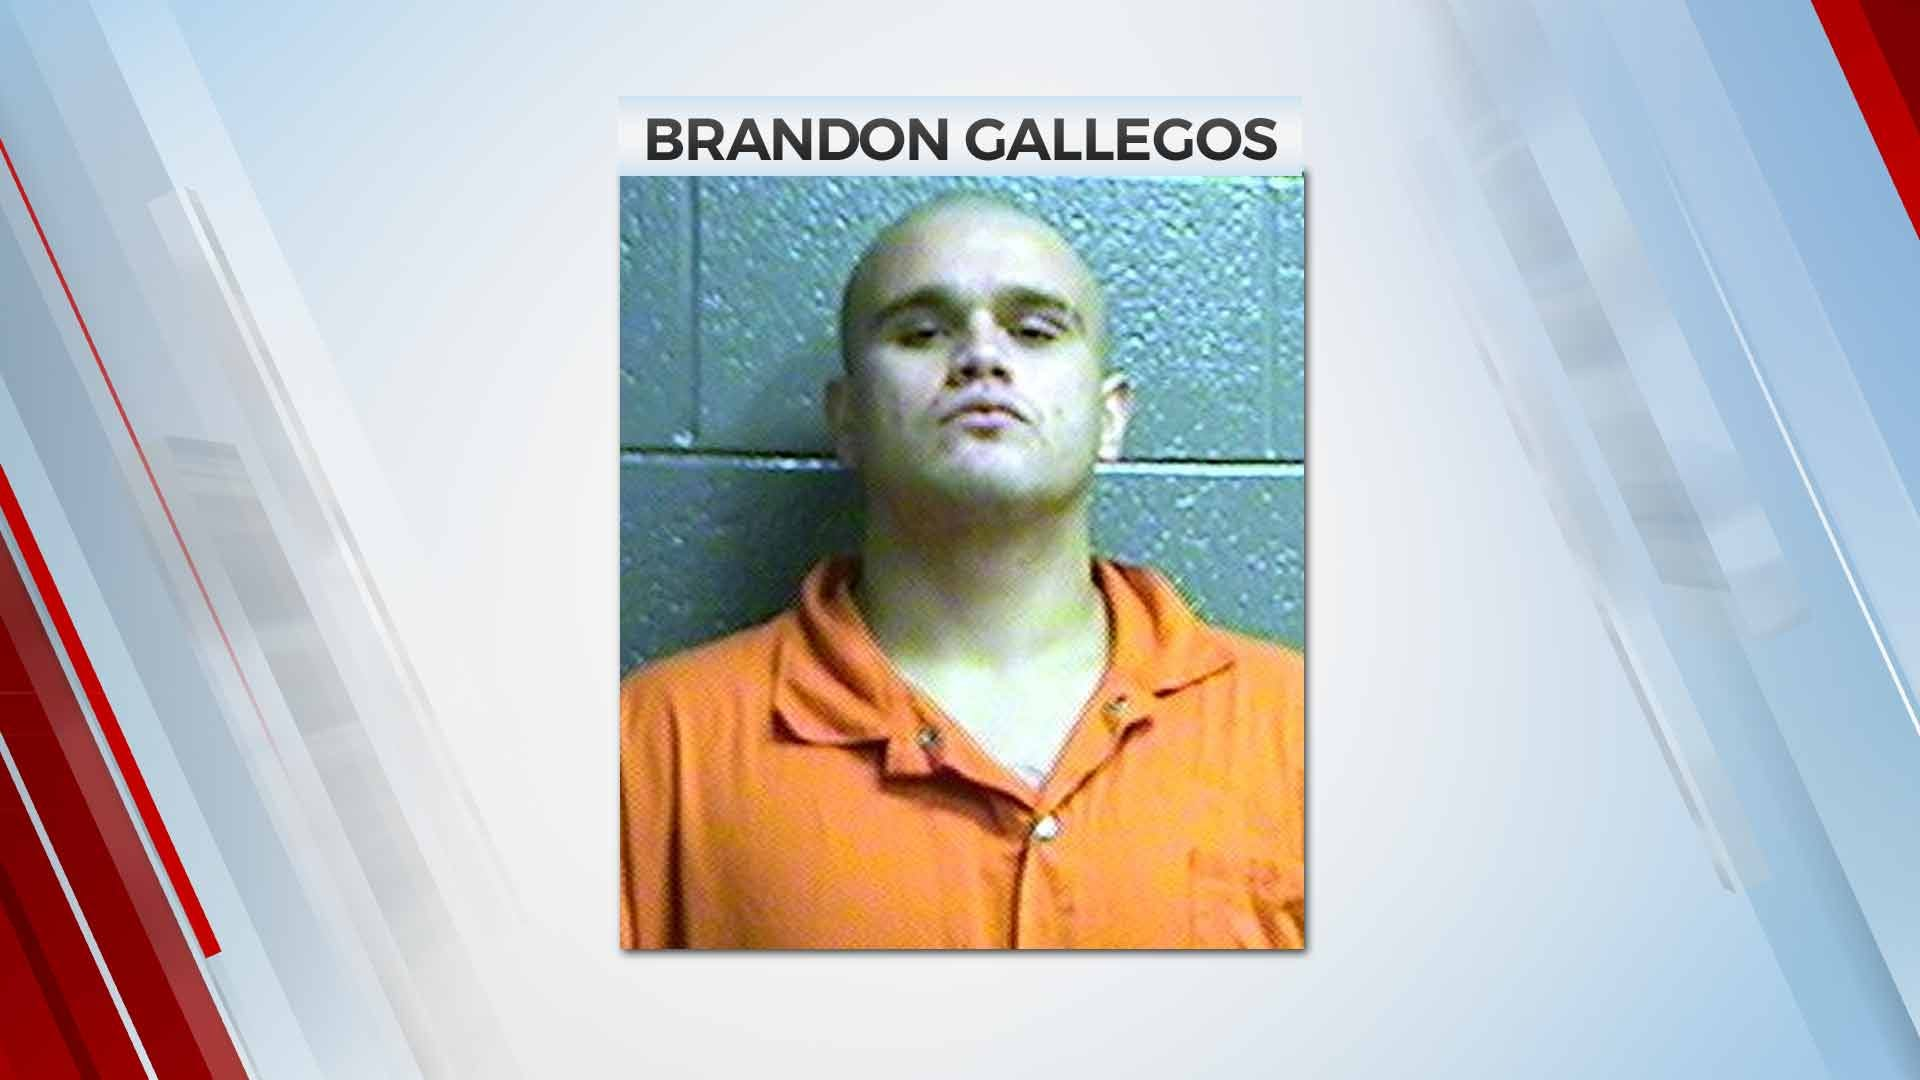 U.S. Marshals Most Wanted Fugitive May Be In Tulsa Area